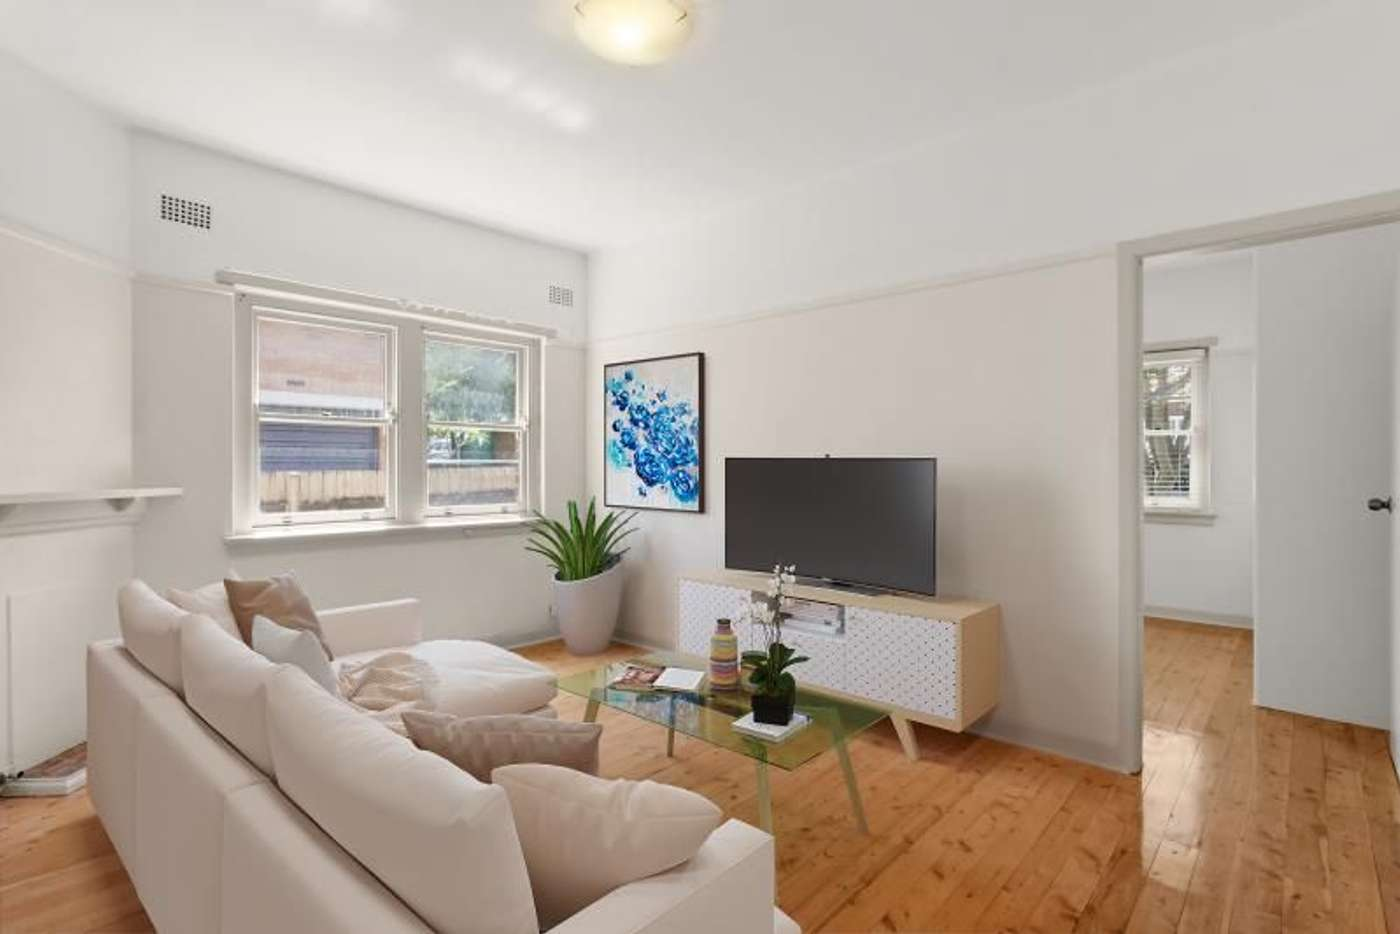 Main view of Homely apartment listing, 2/27 Boundary Street, Clovelly NSW 2031